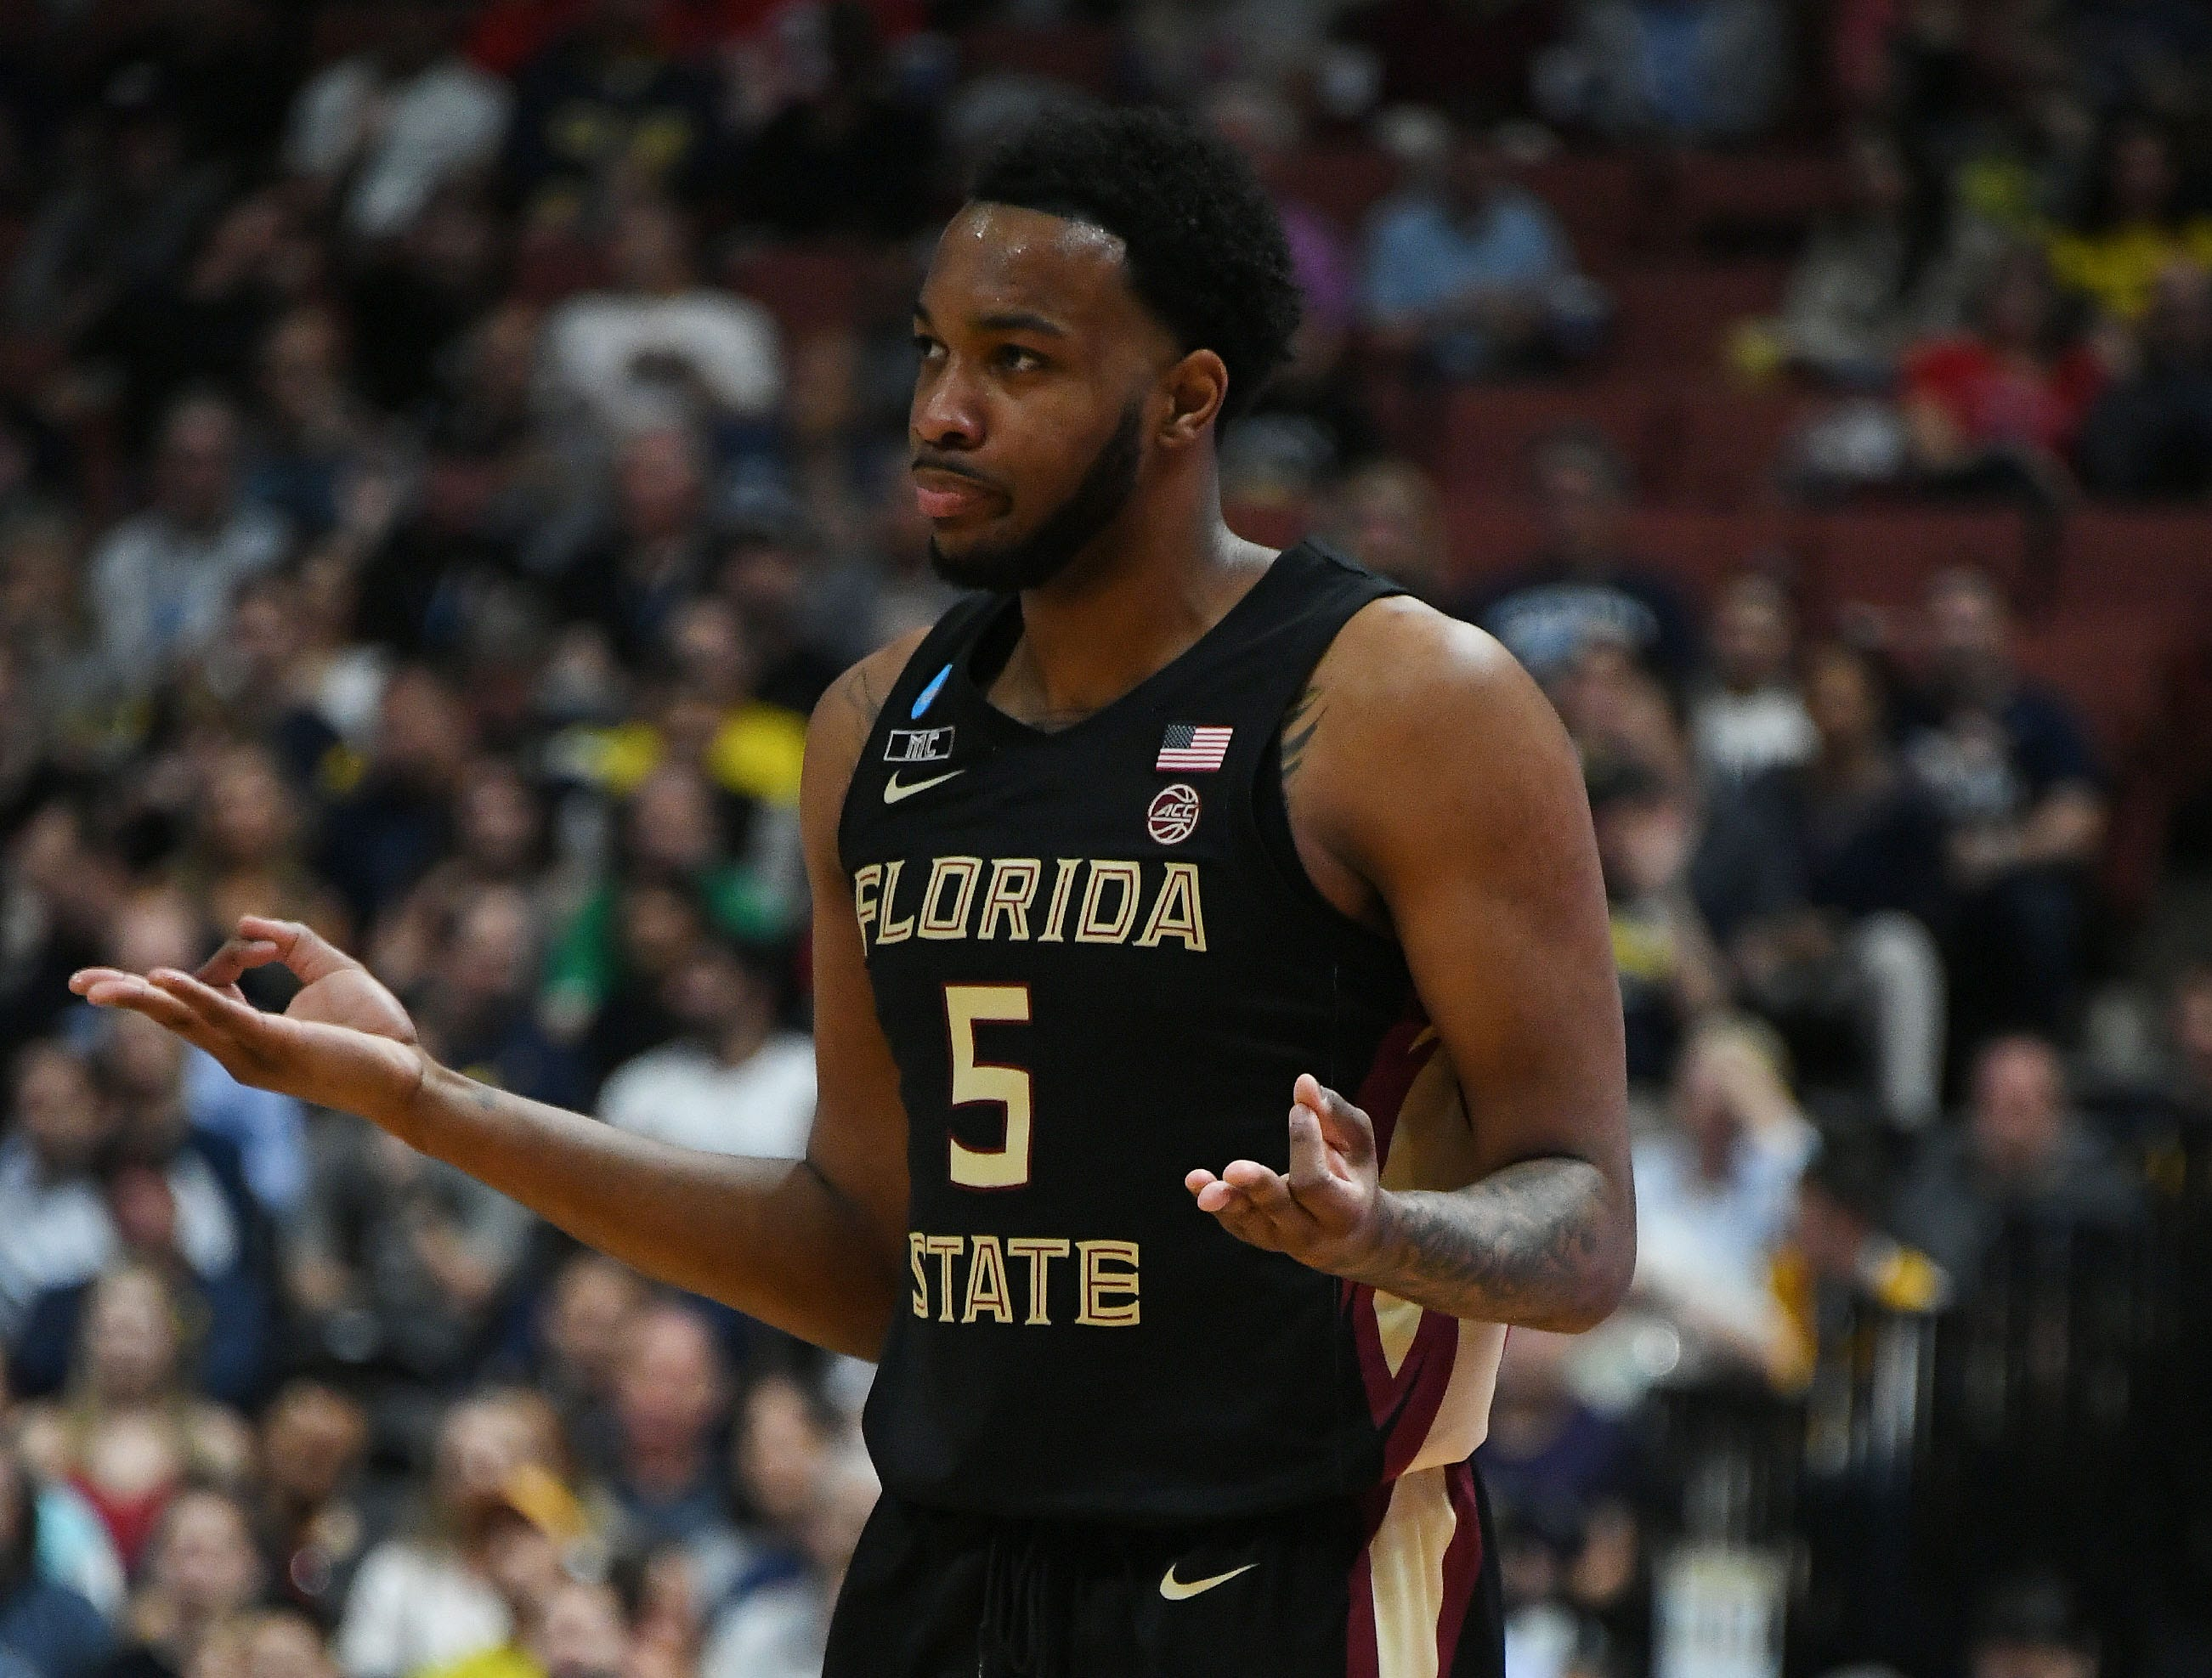 March 28, 2019; Anaheim, CA, USA; Florida State Seminoles guard PJ Savoy (5) reacts against Gonzaga Bulldogs during the first half in the semifinals of the west regional of the 2019 NCAA Tournament at Honda Center. Mandatory Credit: Richard Mackson-USA TODAY Sports